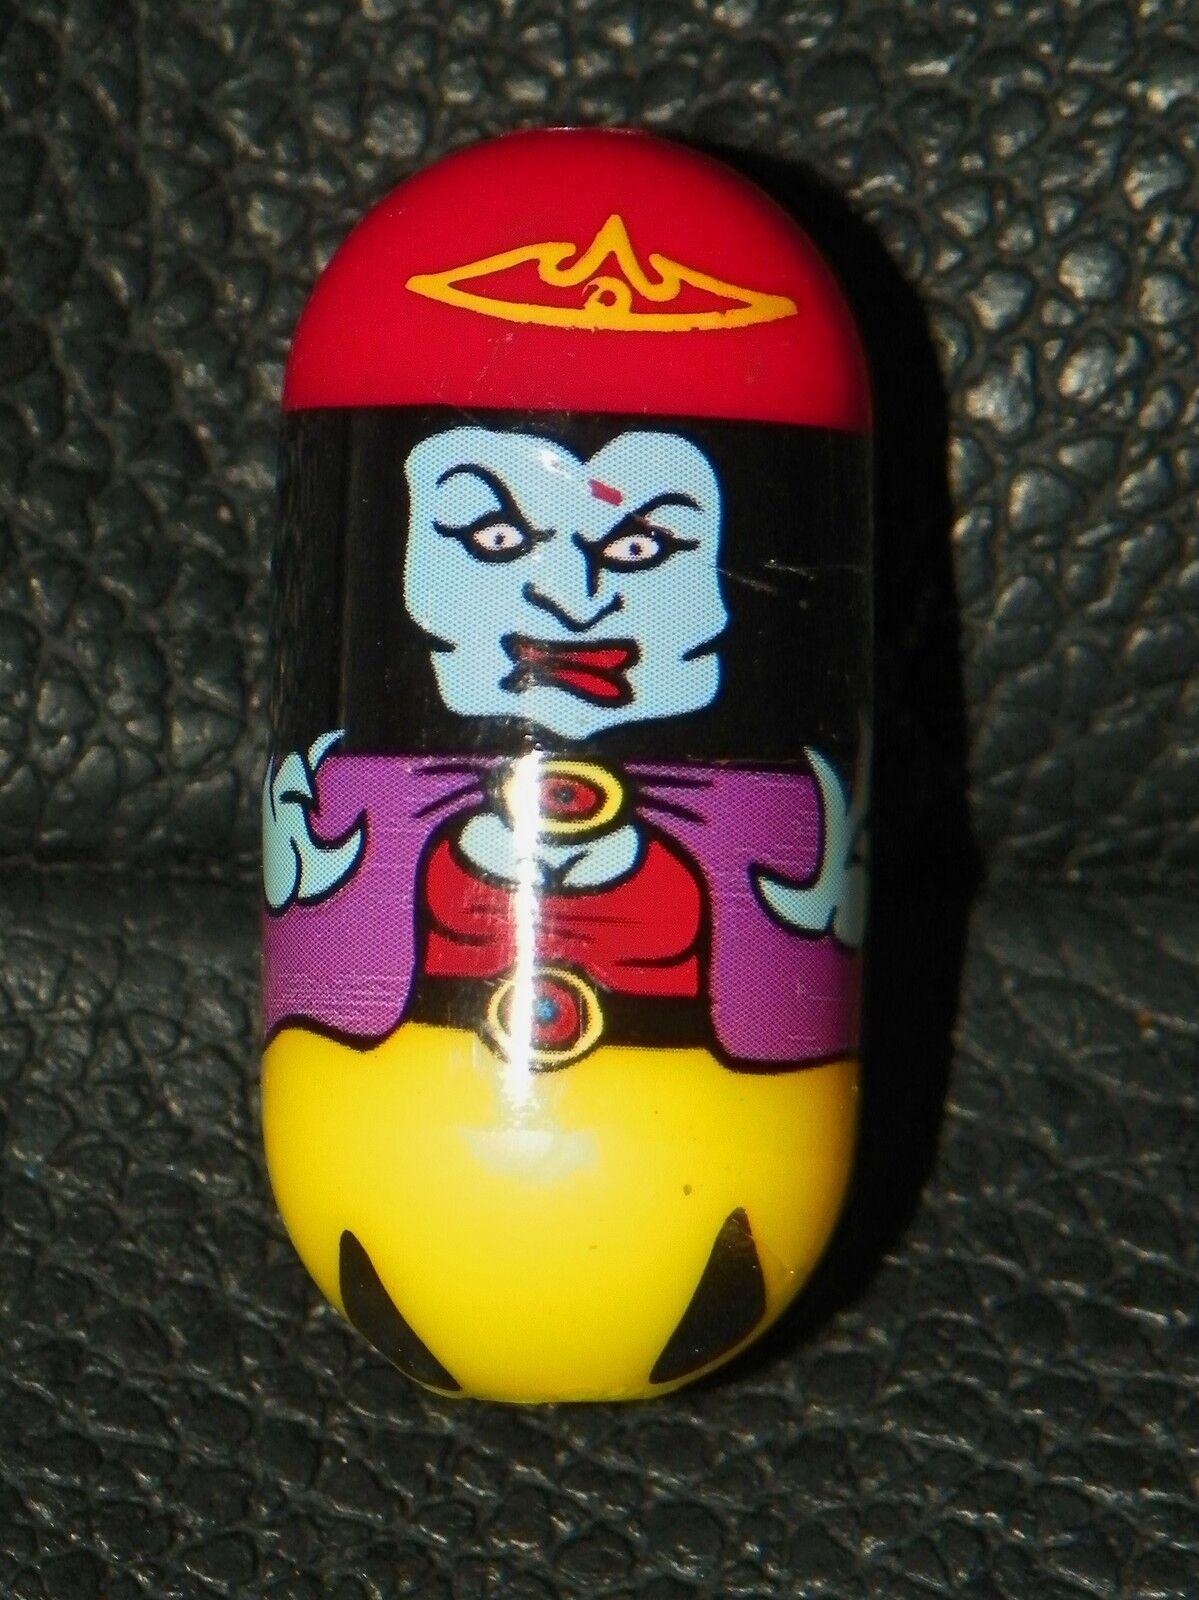 NEW 2003 MIGHTY BEANZ Original Series 1 EVIL QUEEN BEAN Fairytale Team